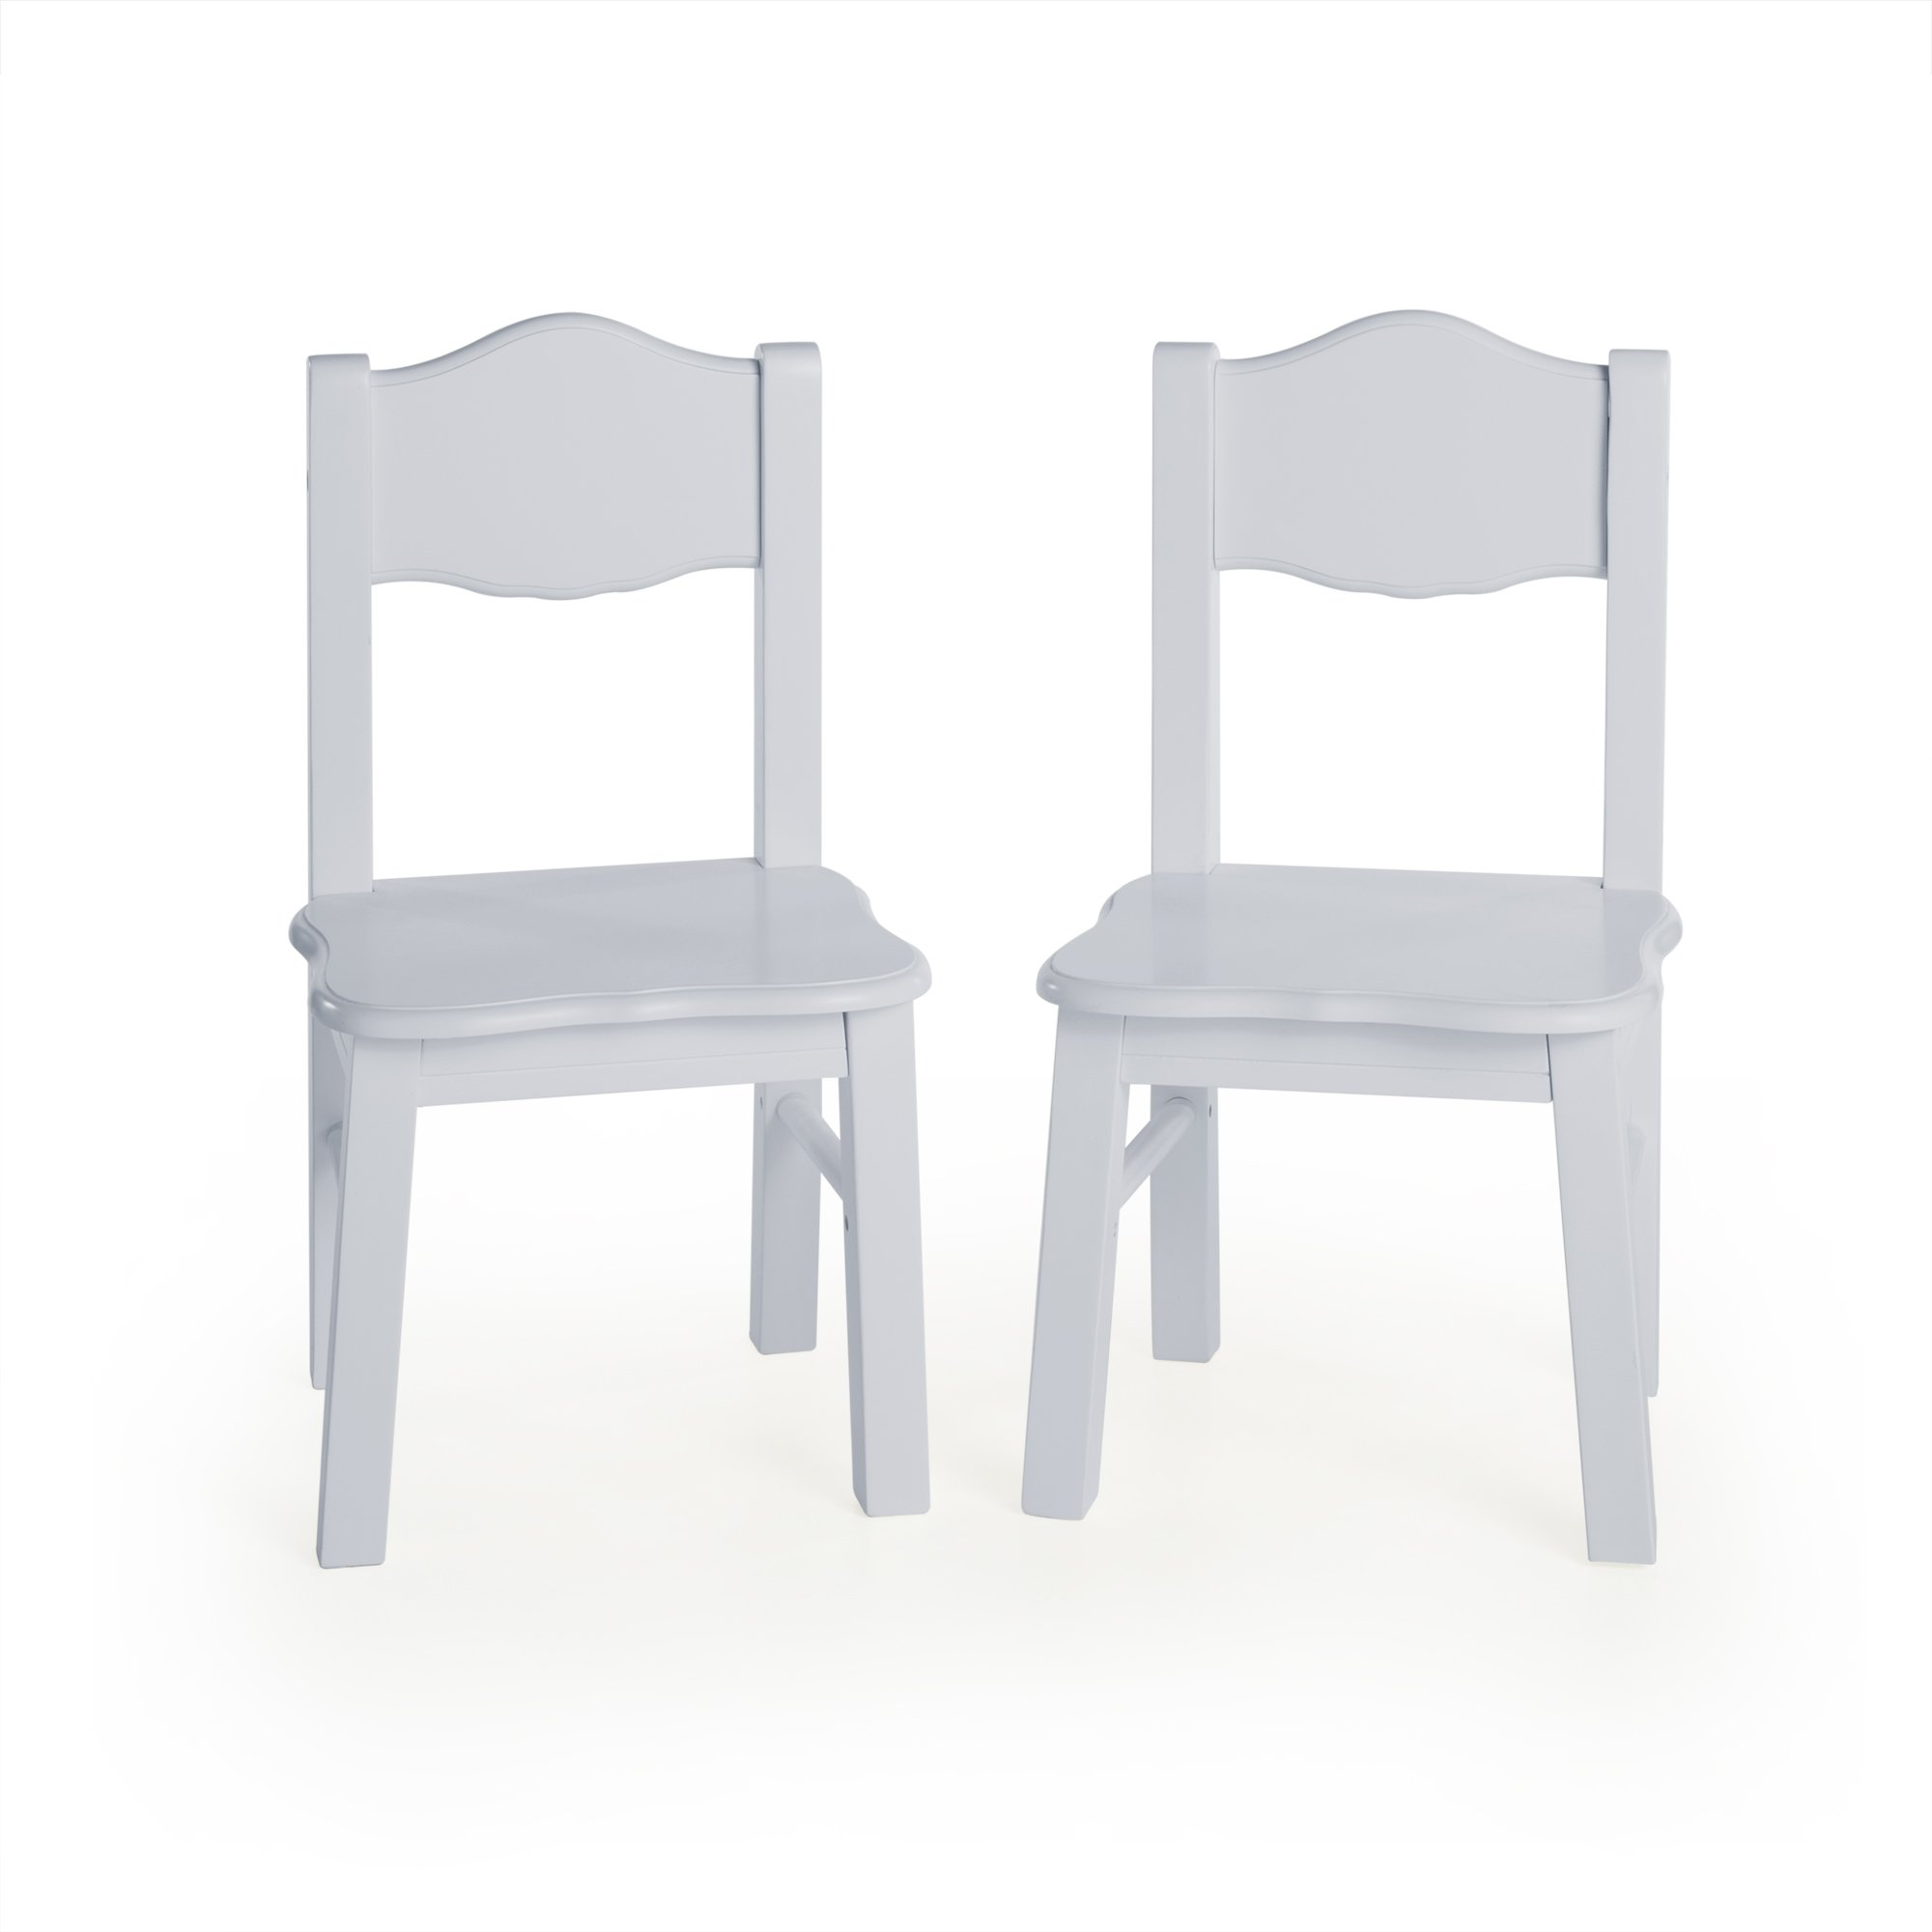 Guidecraft Classic Extra Chairs (Set of 2) - Gray: Kids School Educational Supply Furniture